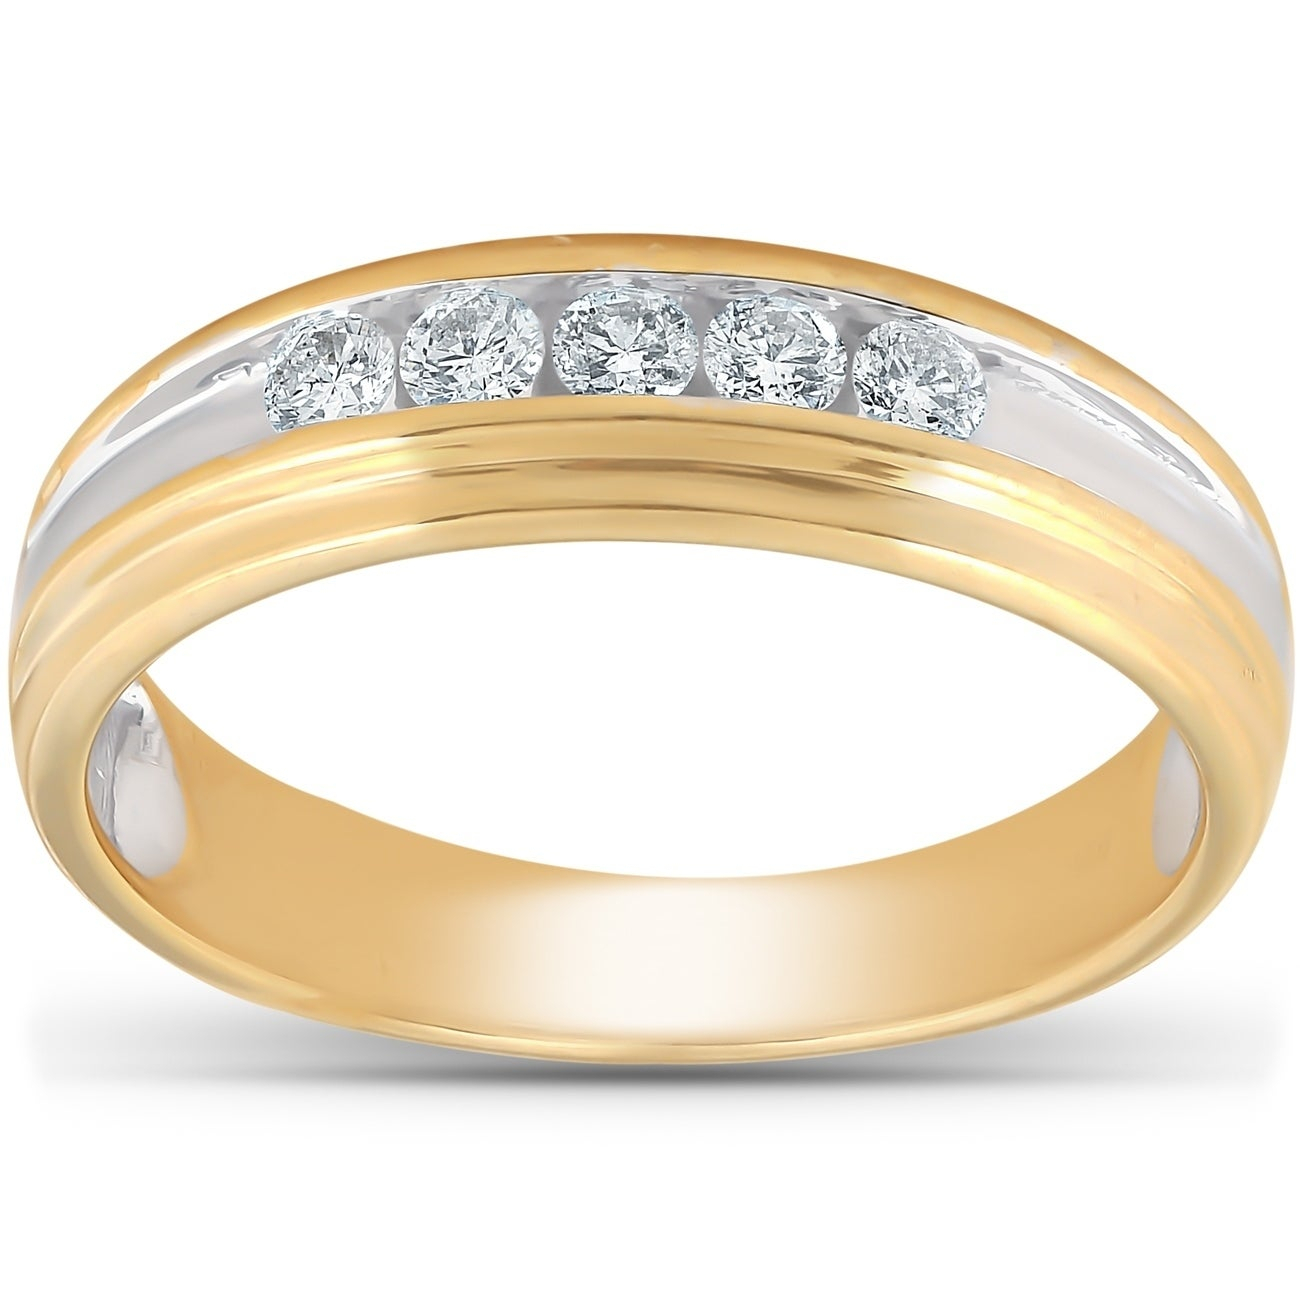 Pompeii3 10K Yellow Gold 1/4 Ct Tdw Mens Diamond Channel Set Wedding Ring  Anniversary Band For Newest Diamond Channel Set Anniversary Bands In Gold (View 23 of 25)